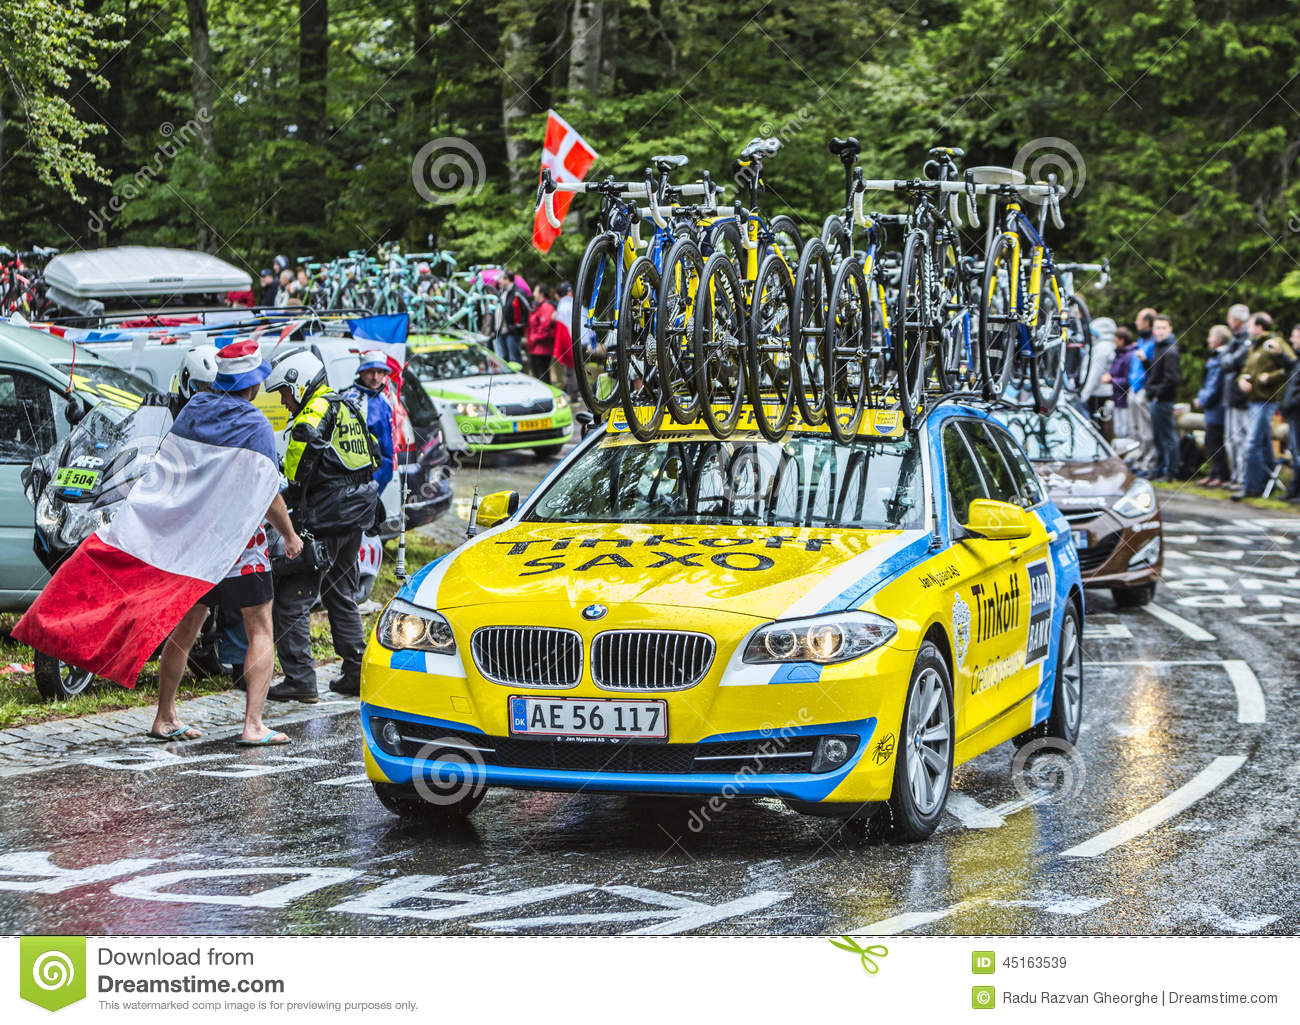 the team car of thinkoff saxo during le tour de france editorial stock image image 45163539. Black Bedroom Furniture Sets. Home Design Ideas